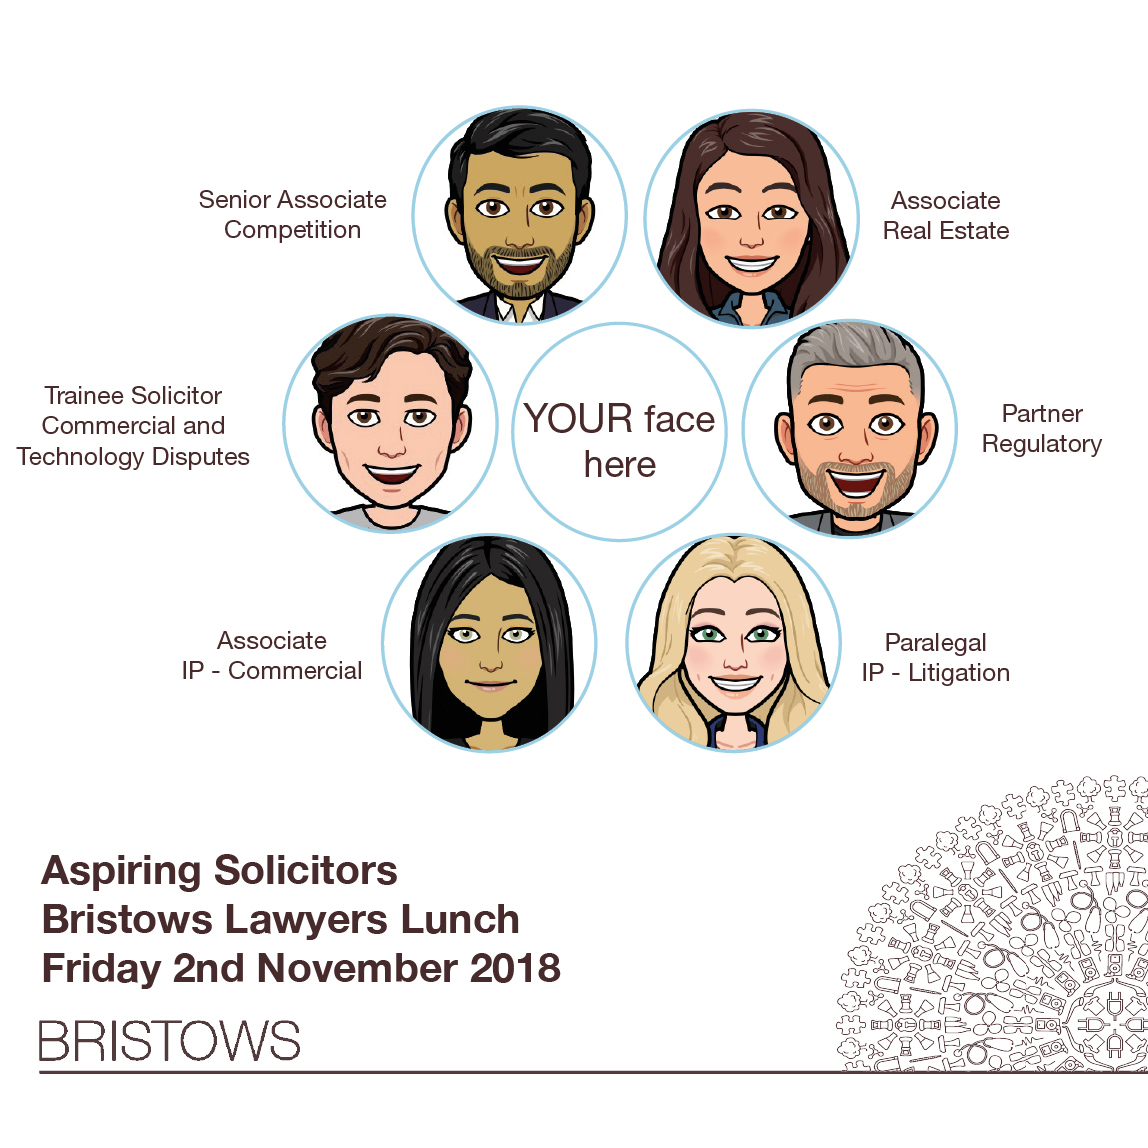 Bristows Lawyers' Lunch